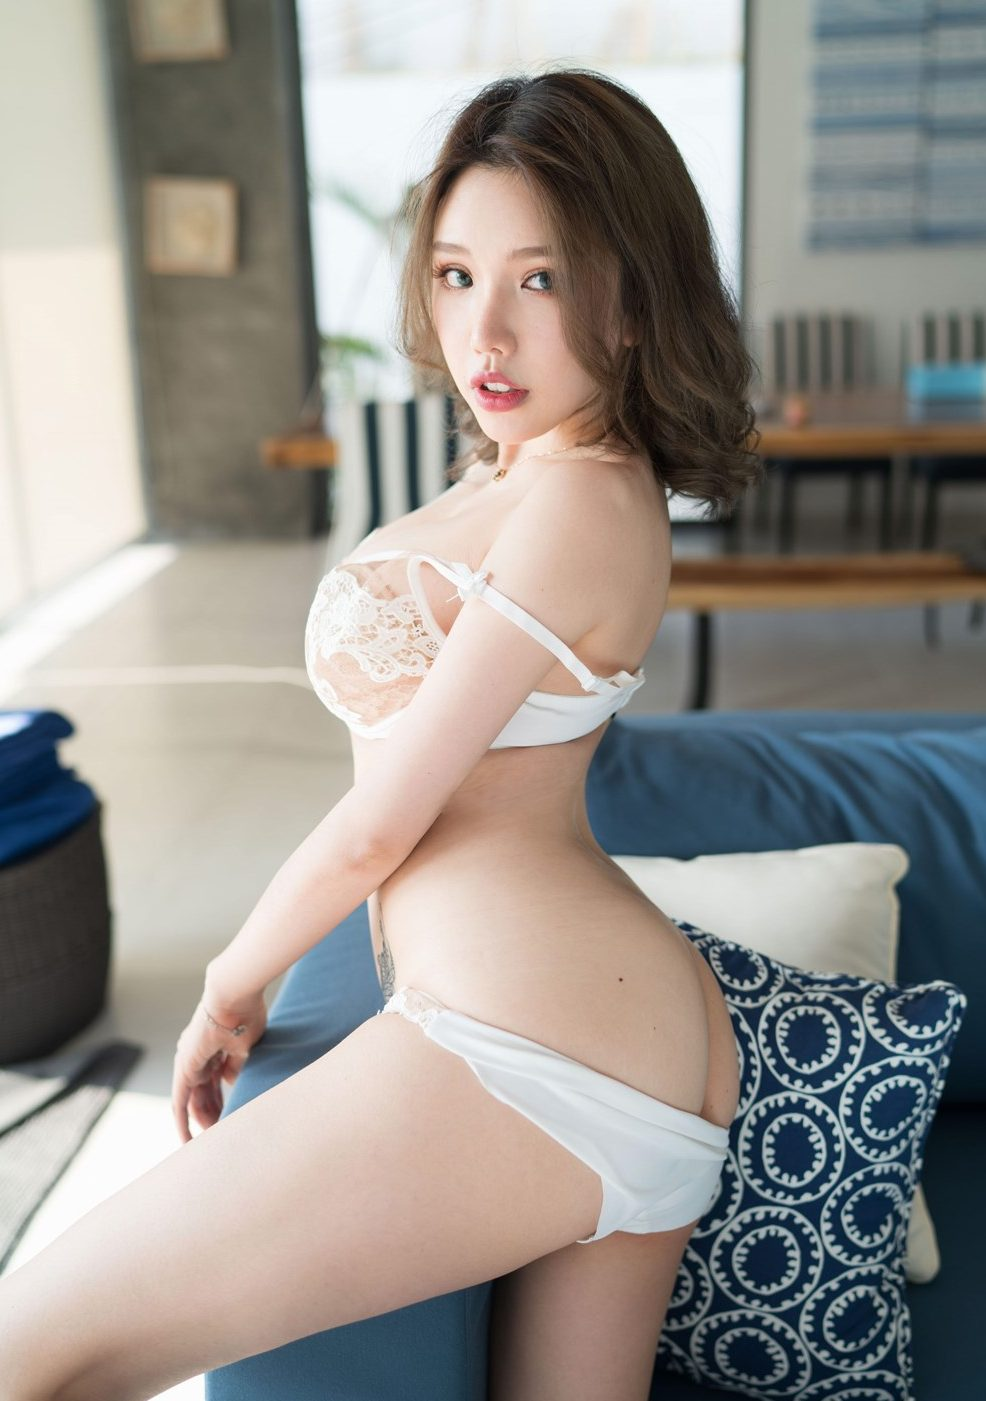 huang le ran dry humps her pillow very hot pictures